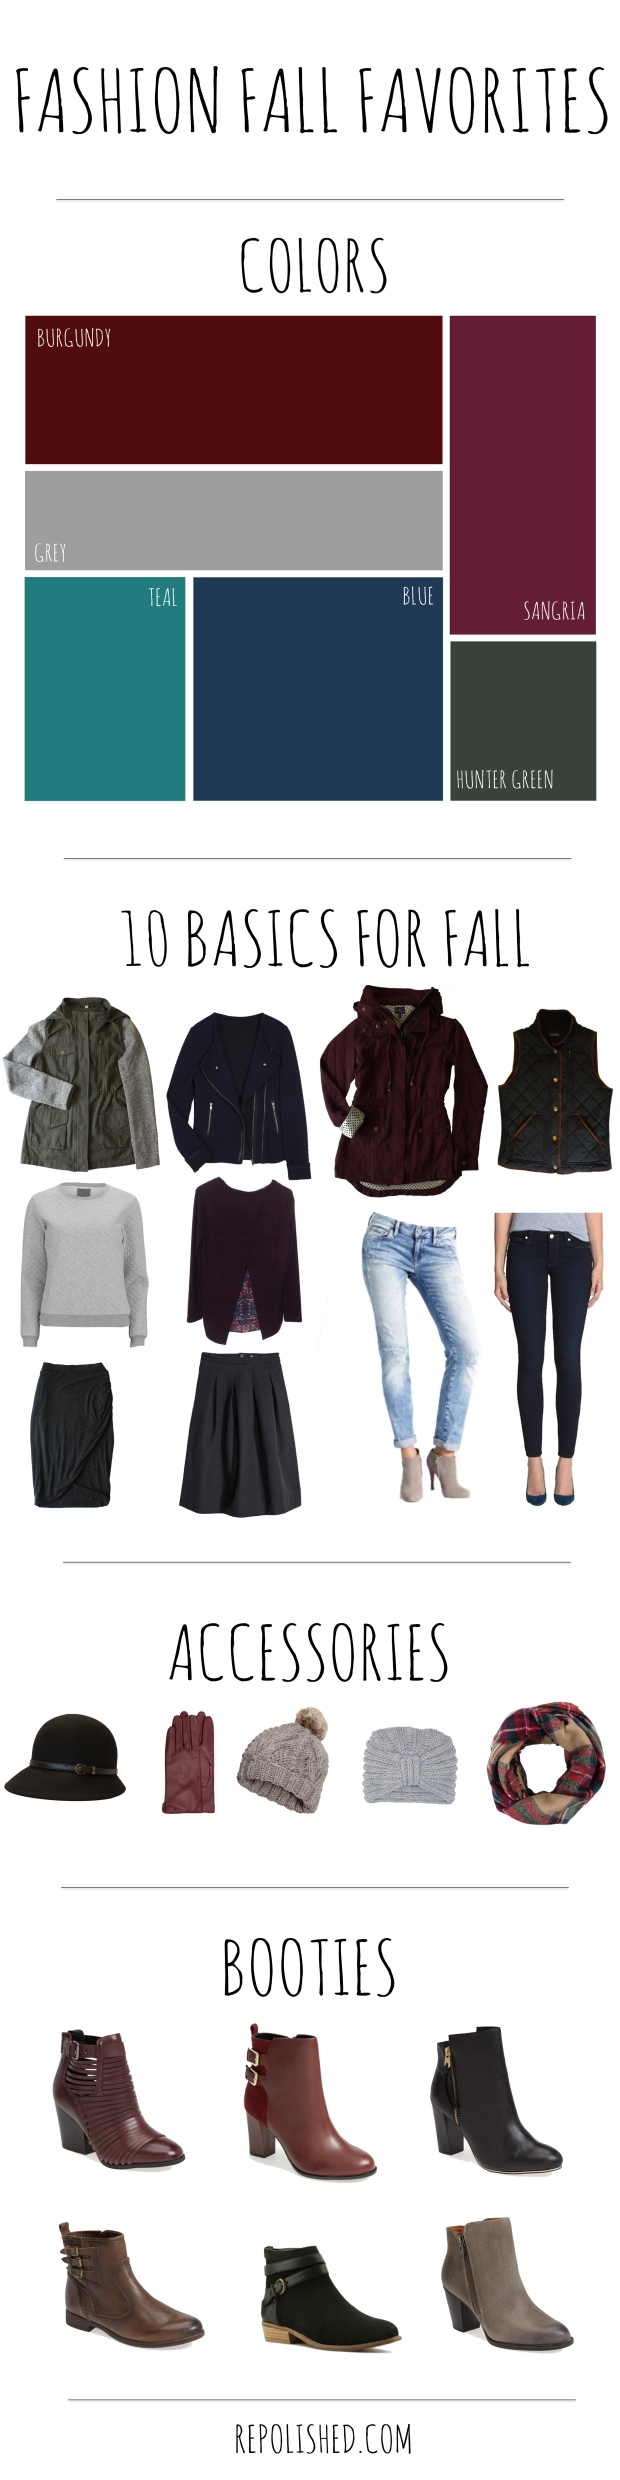 Fashion fall favorites: 10 basics, colors, accessories and booties for fall! | repolished.com